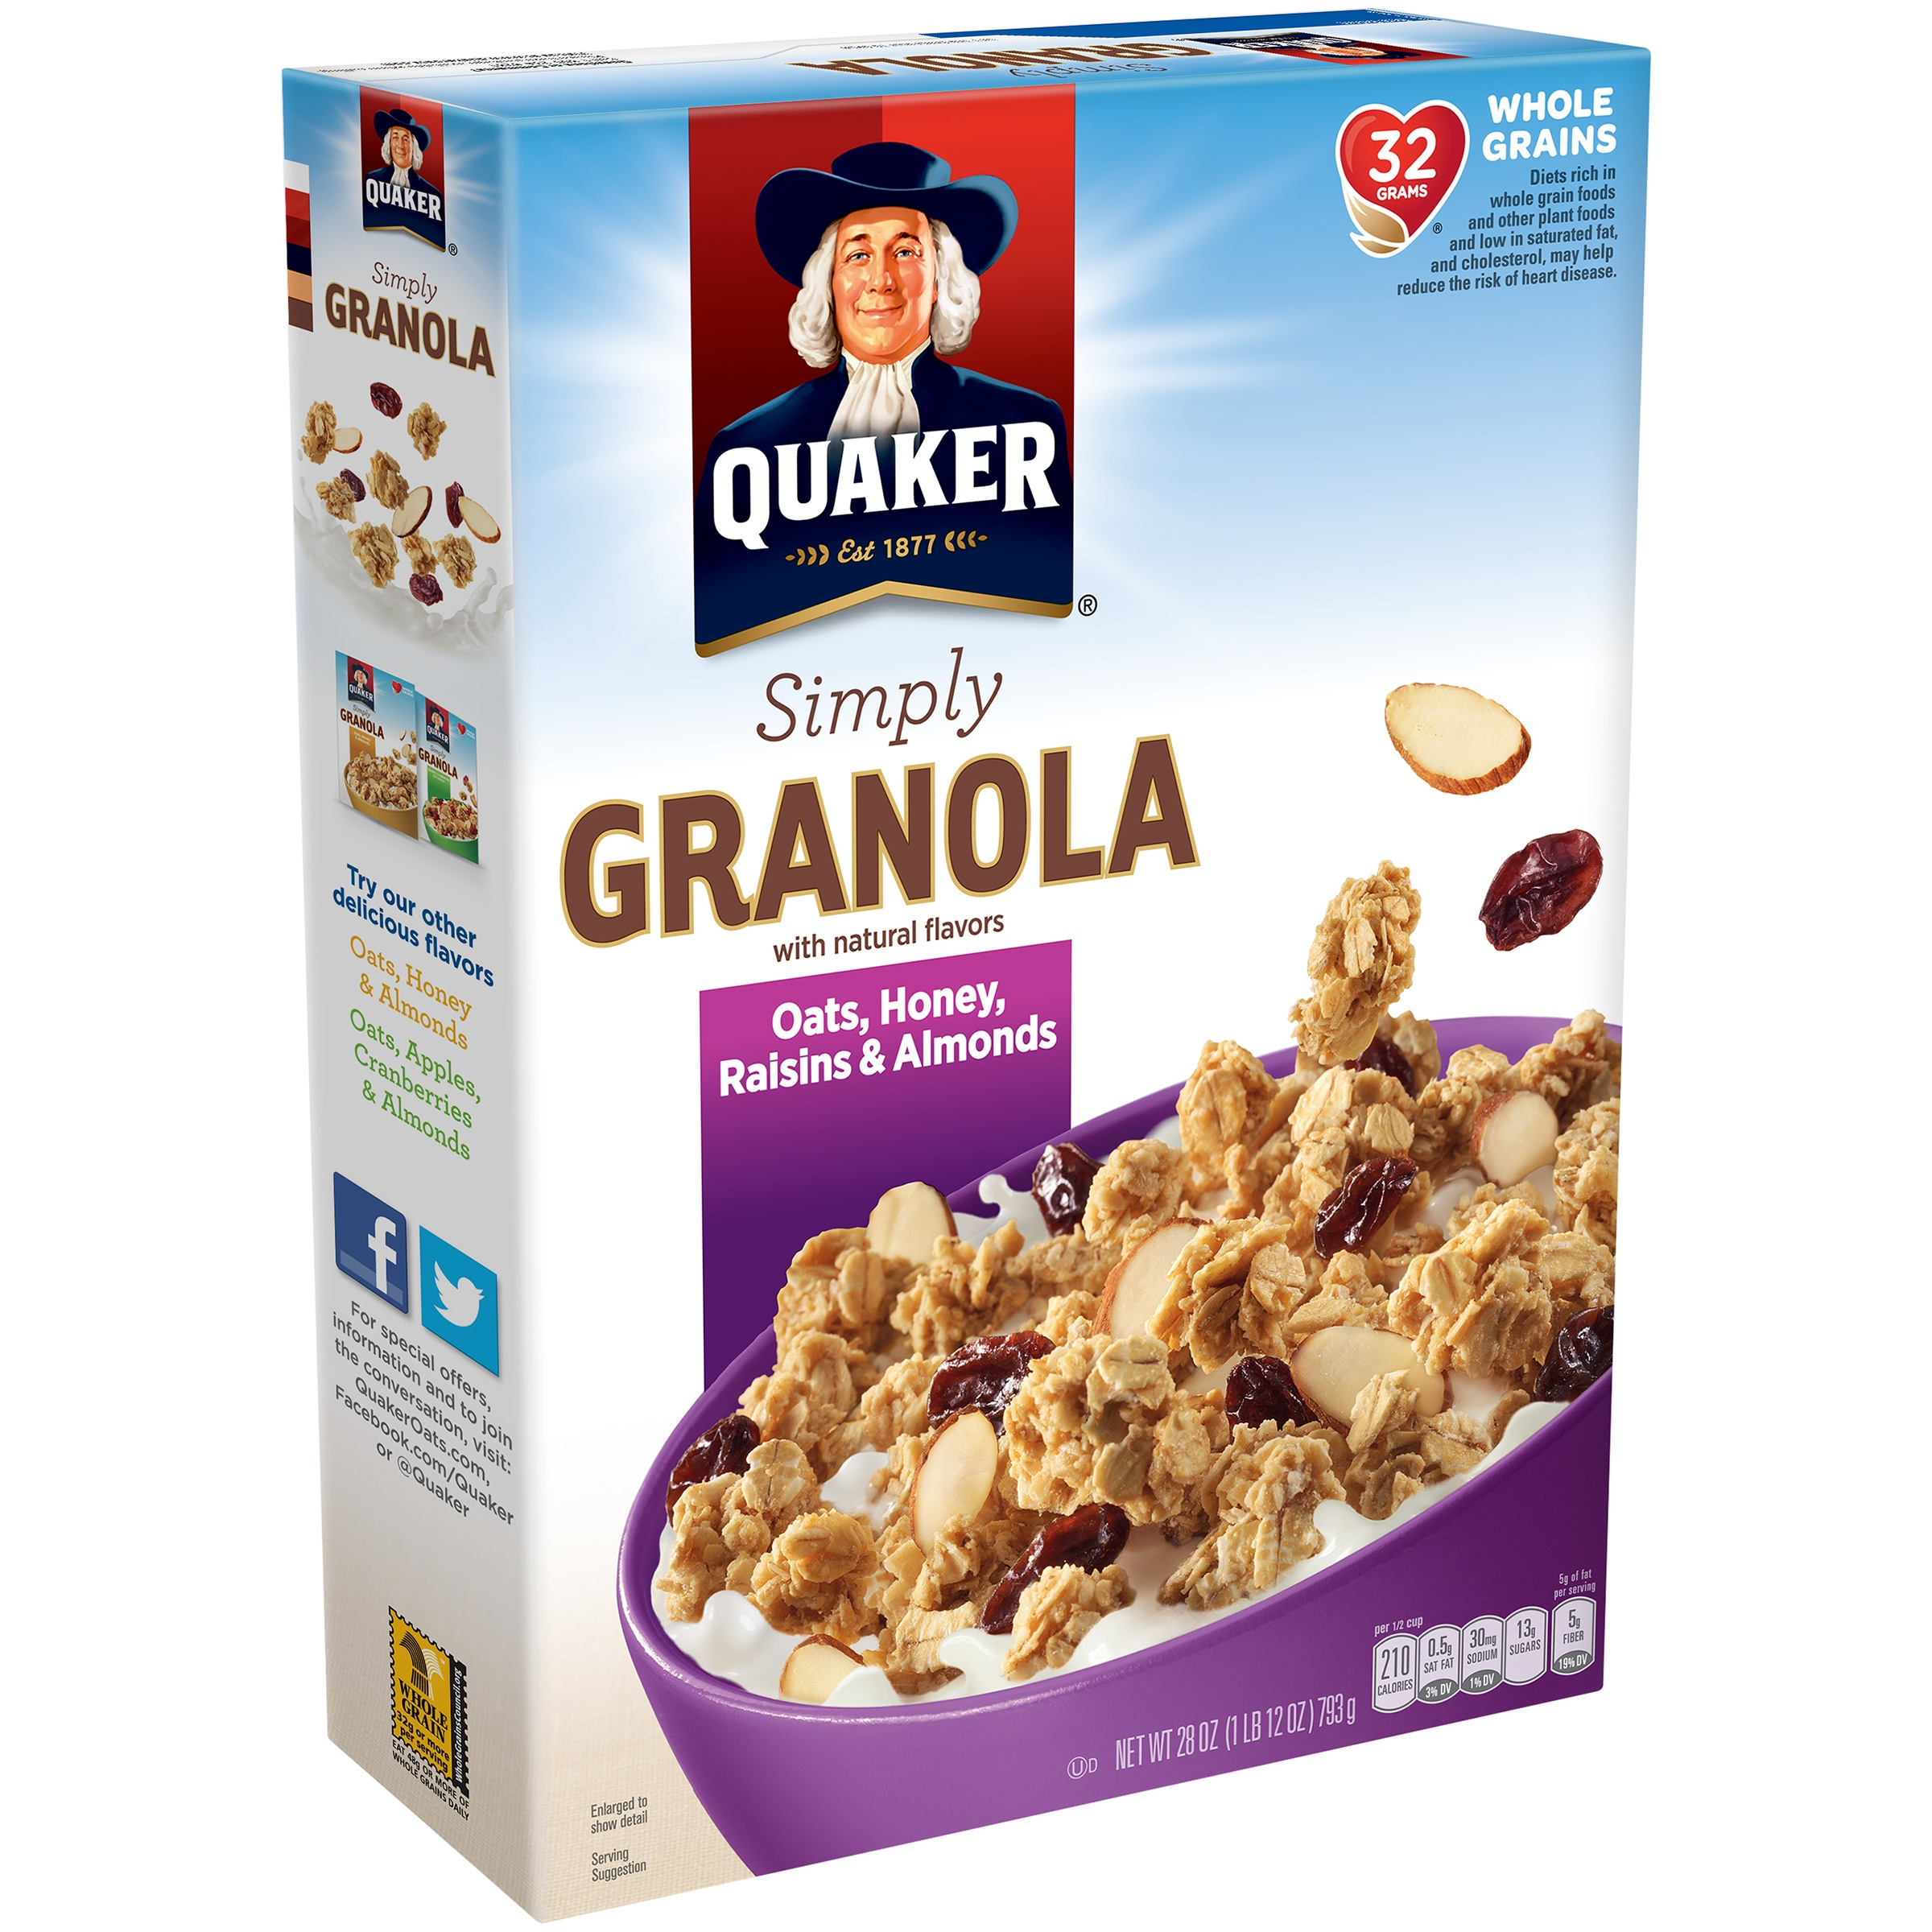 Quaker Simply Granola, Oats, Honey, Raisins & Almonds, 28 oz Box